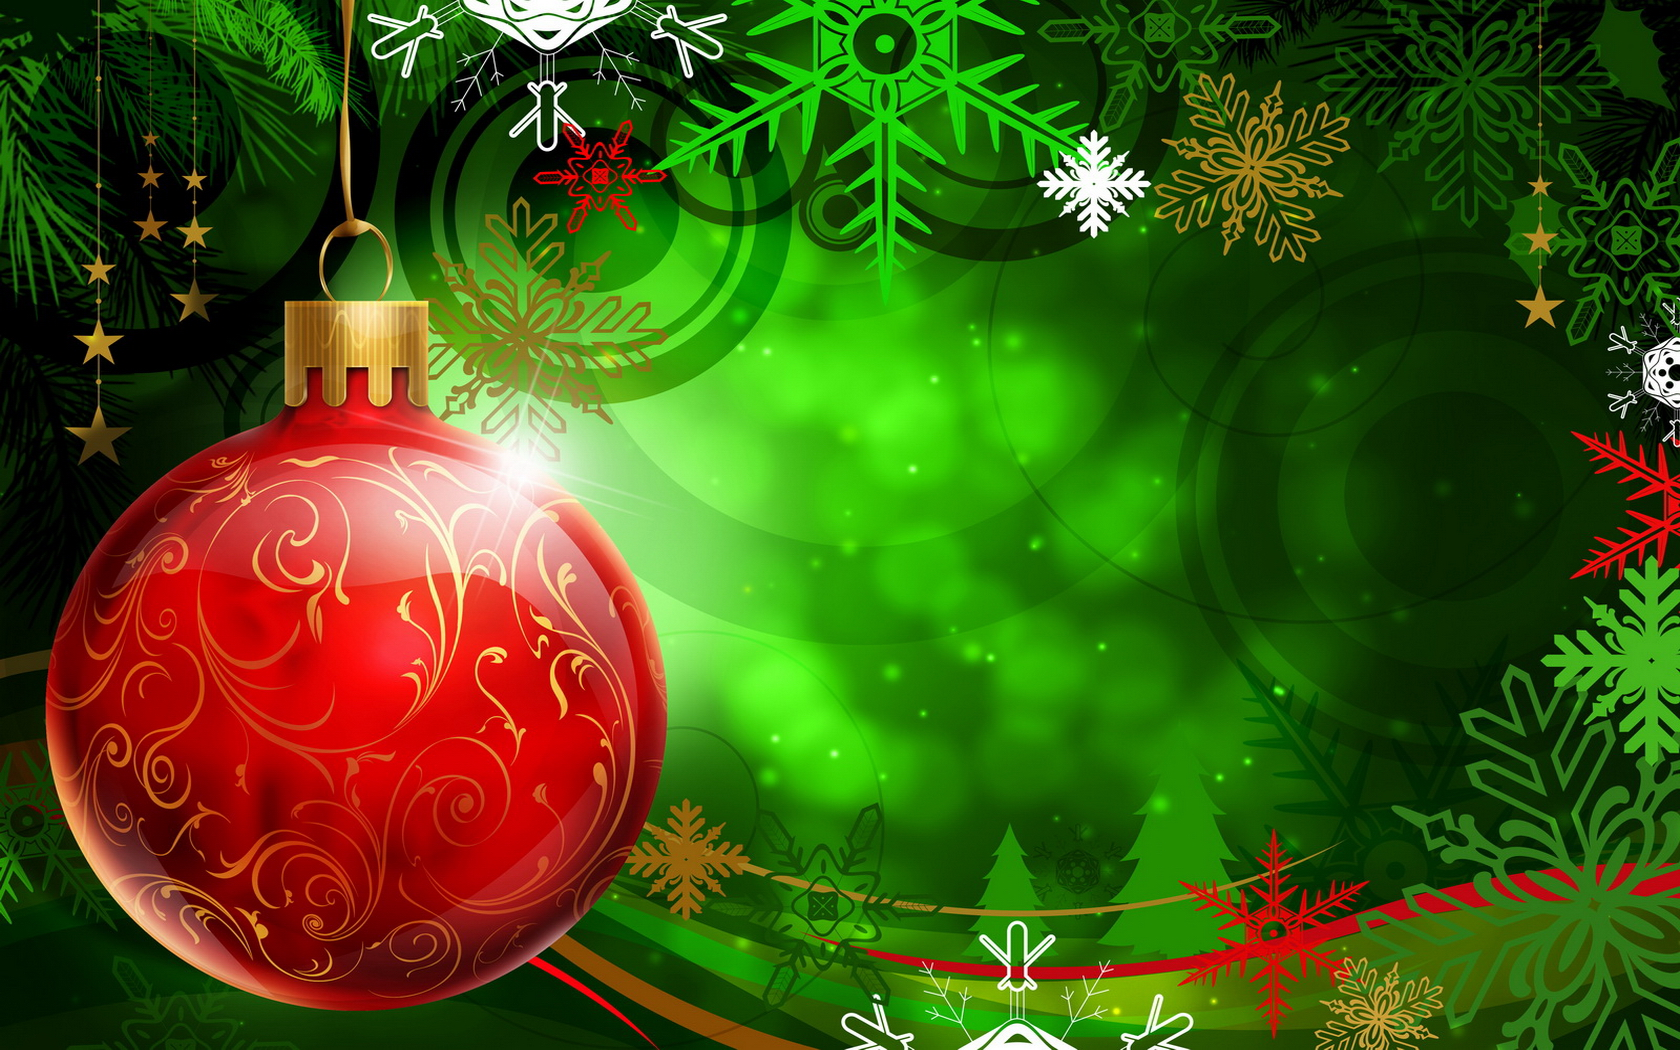 Free Abstract Free Christmas Live Wallpaper Downloads For Desktop Wallpaper